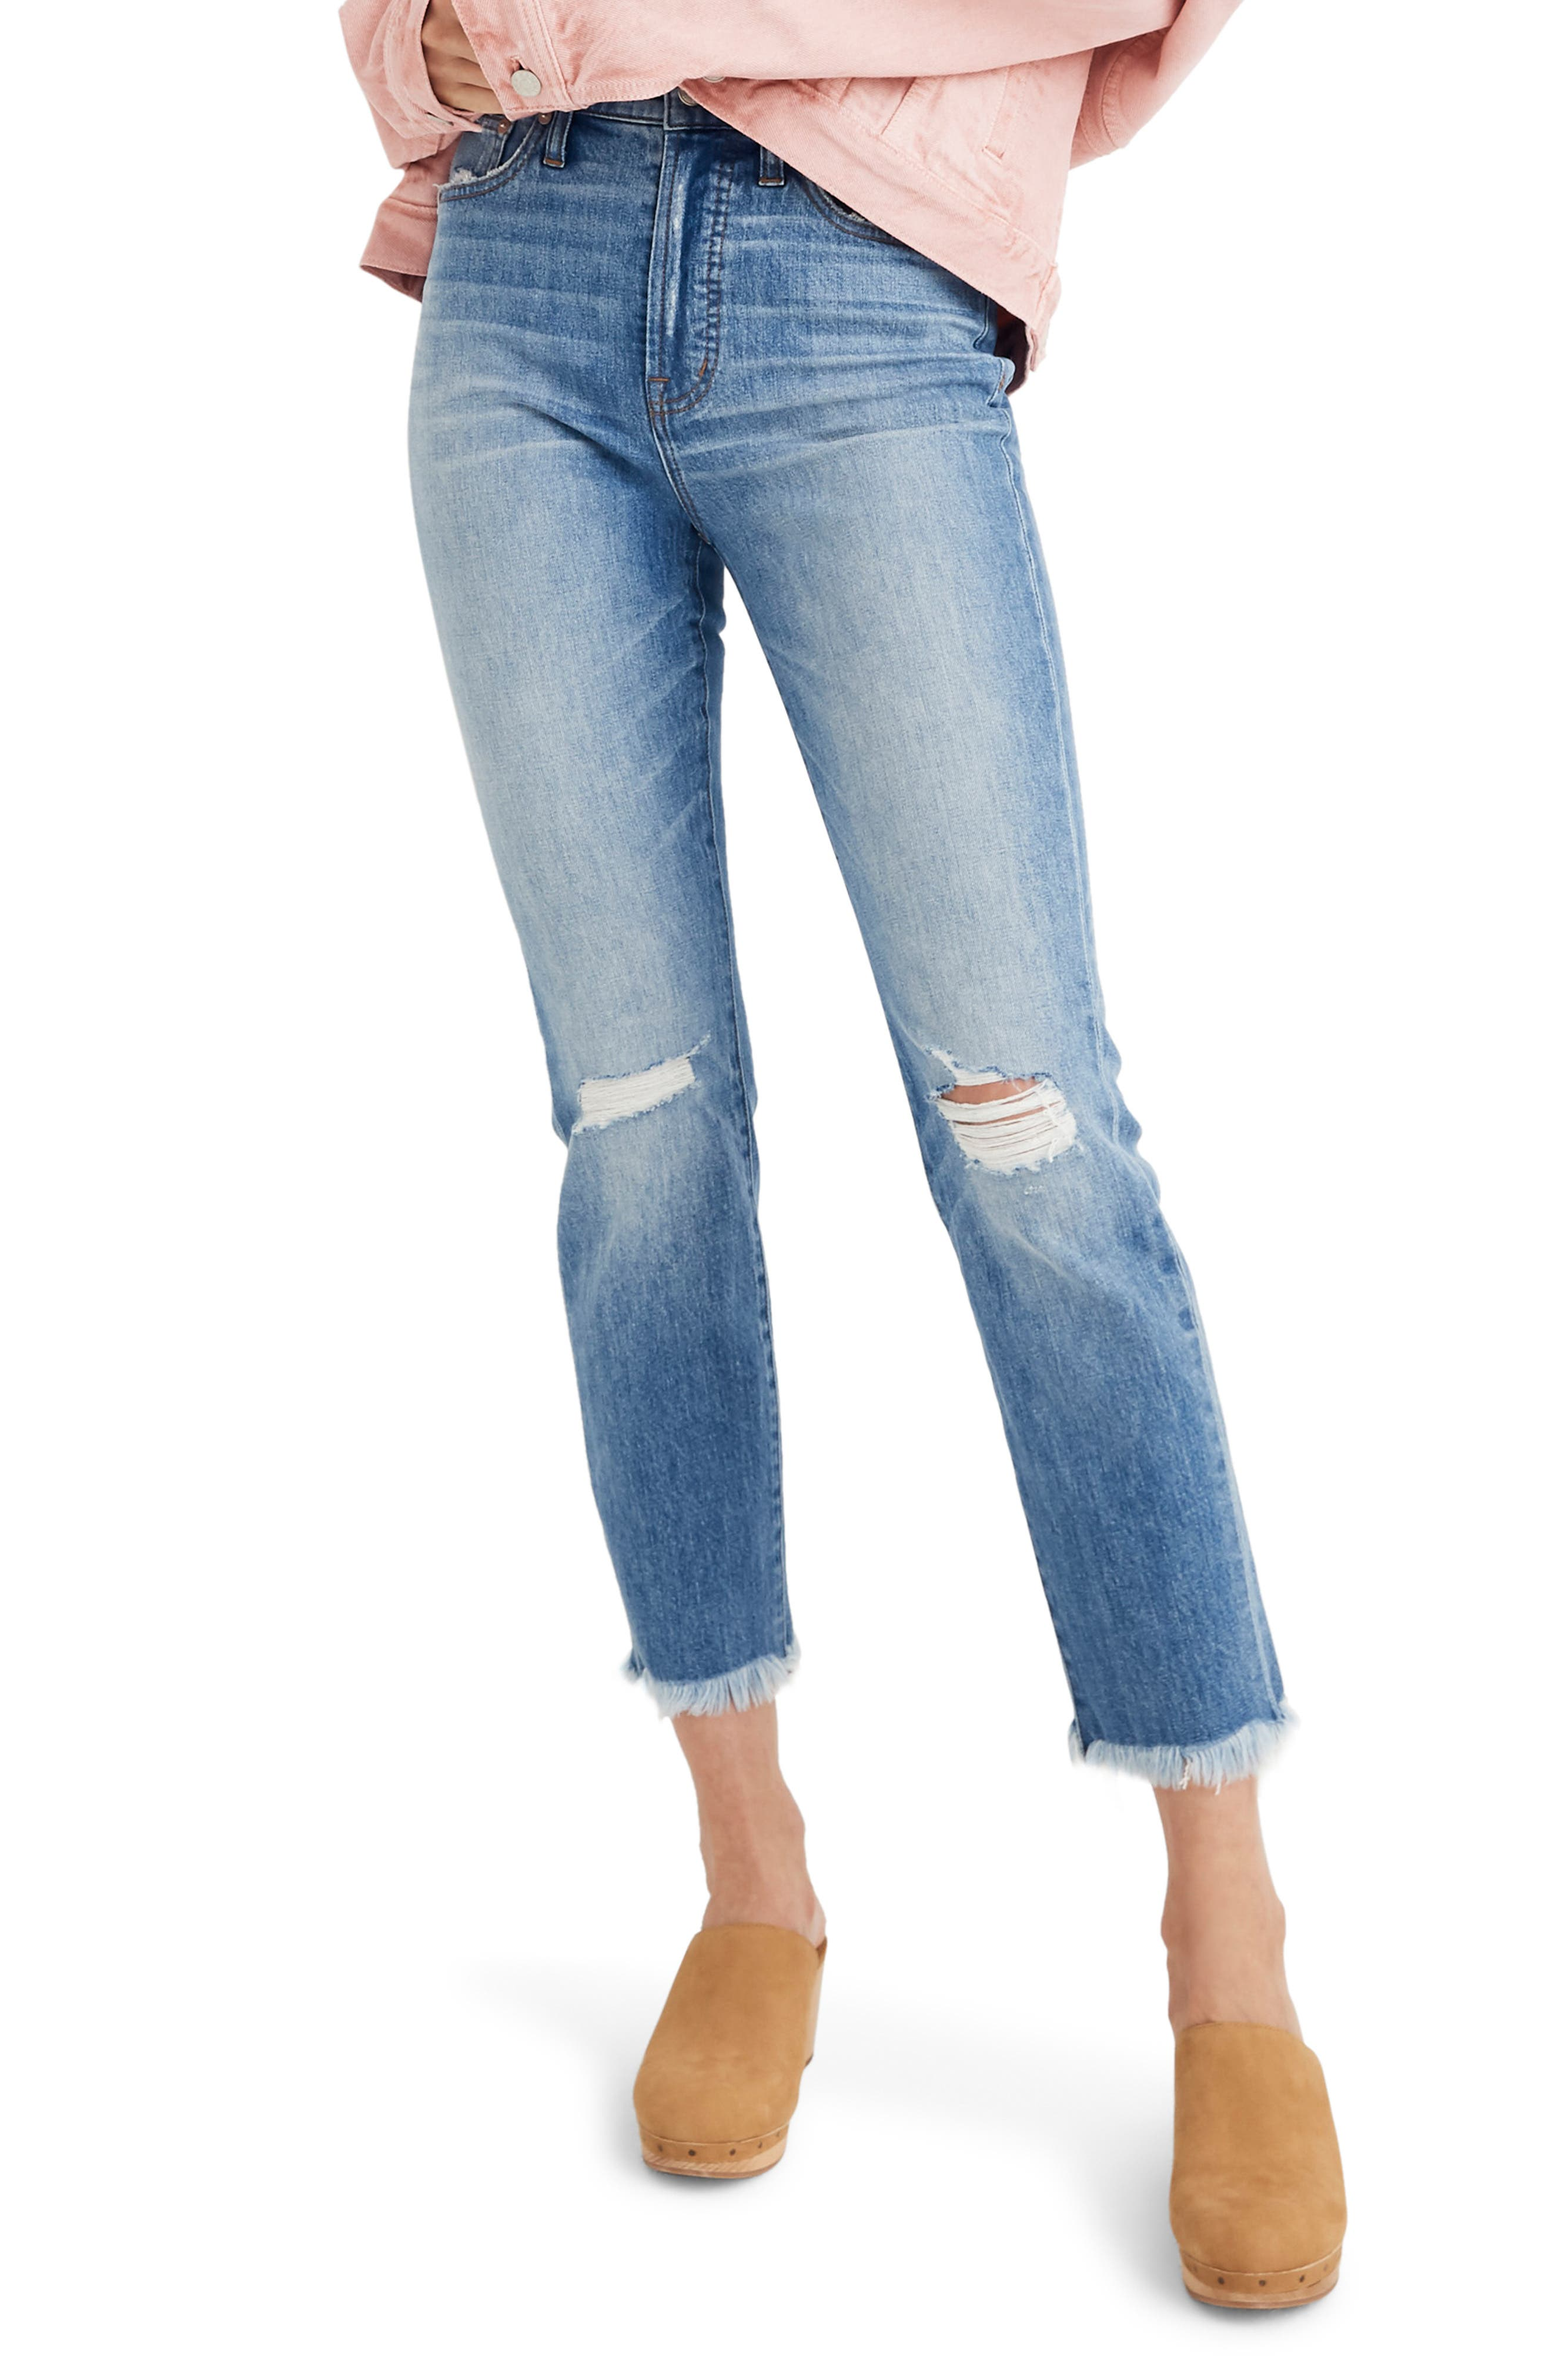 MADEWELL, The Perfect Vintage Crop High Waist Jeans, Main thumbnail 1, color, PARNELL WASH